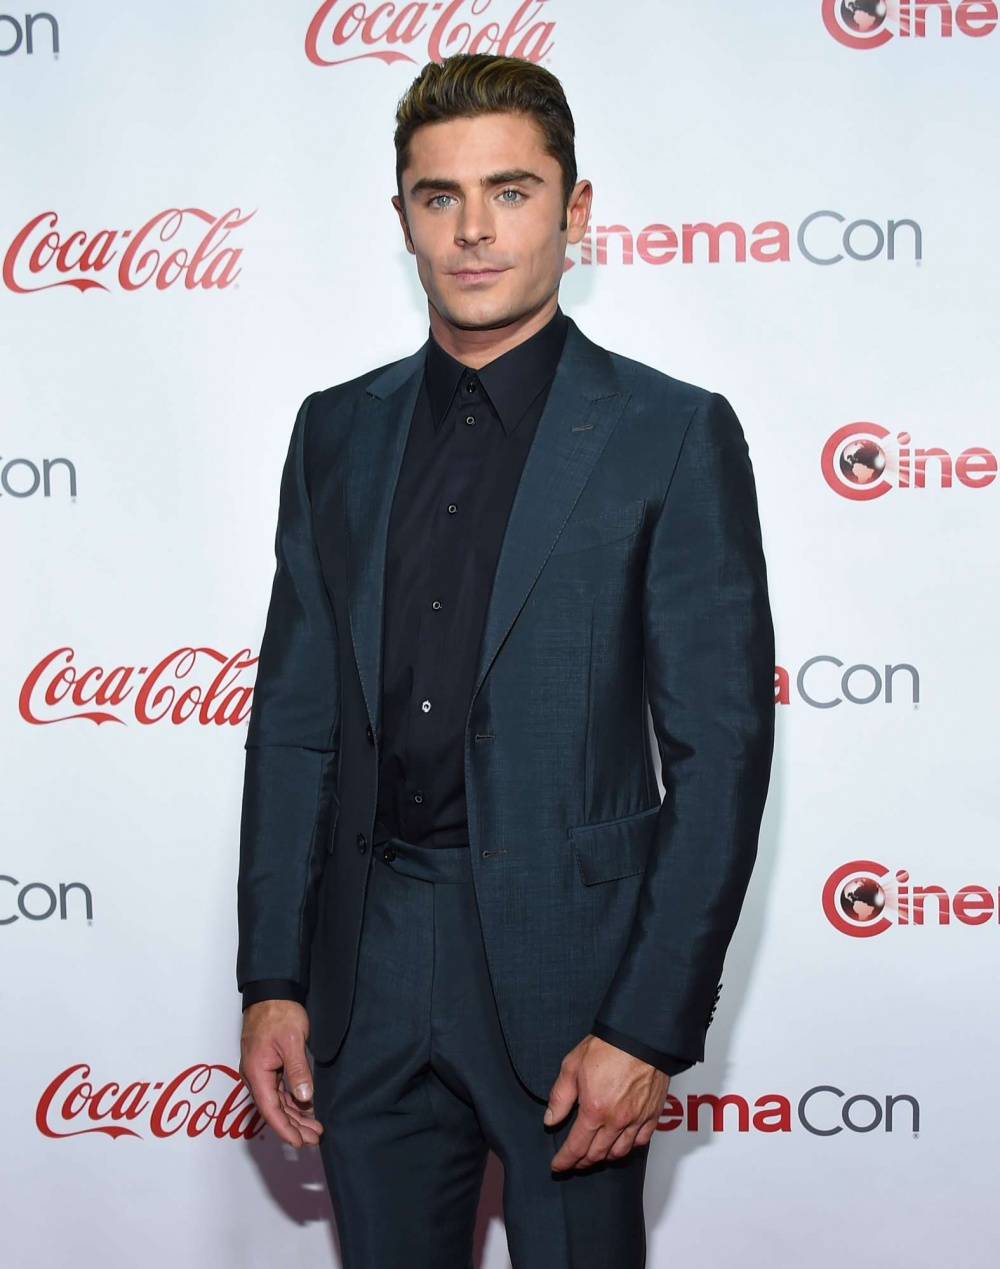 Zac Efron will next star as serial killer Ted Bundy TheFuss.co.uk